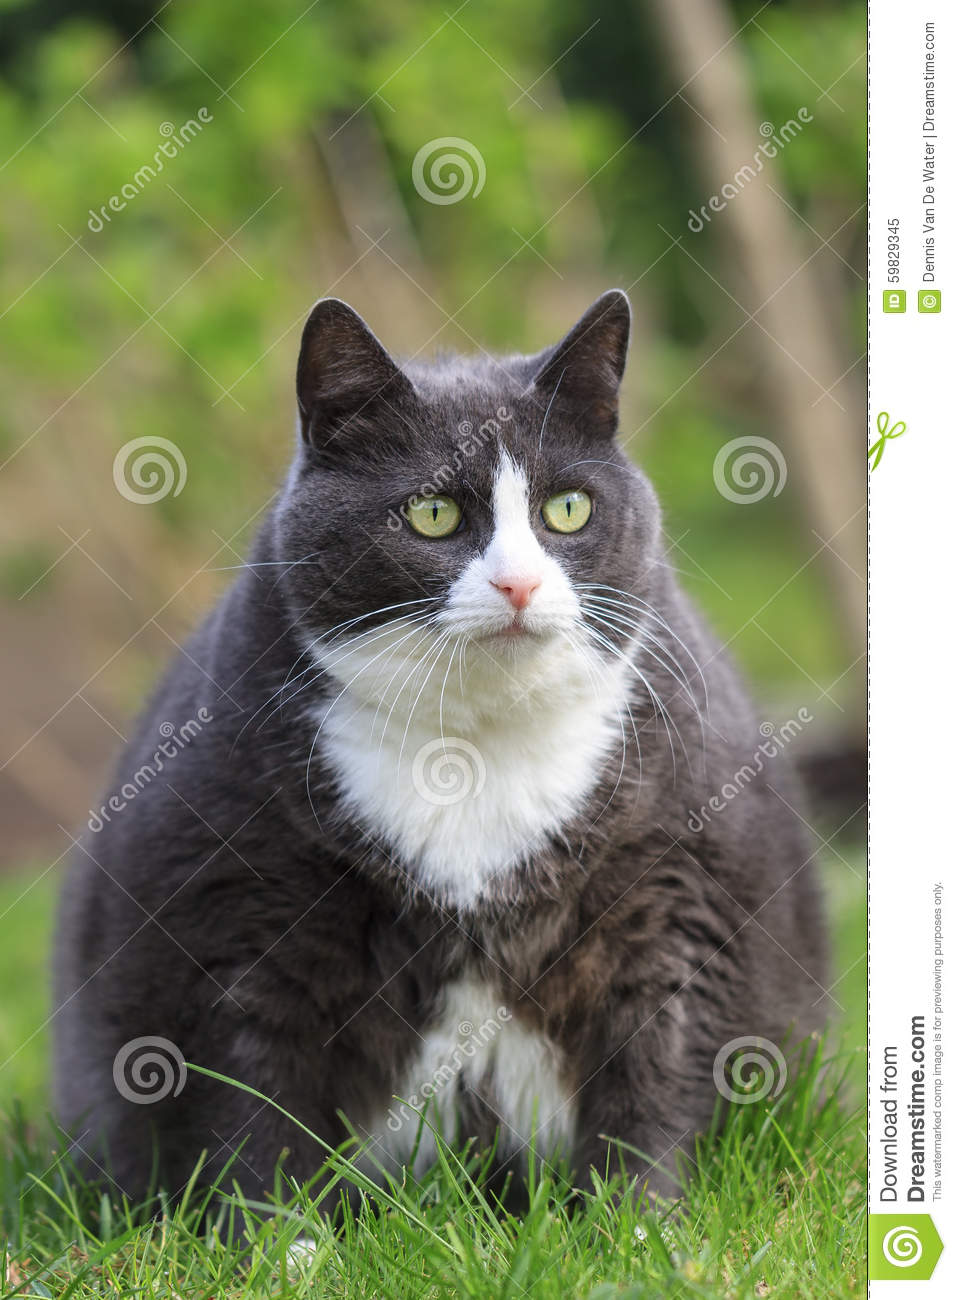 Hungry Fat Cat Stock Photo - Image: 59829345